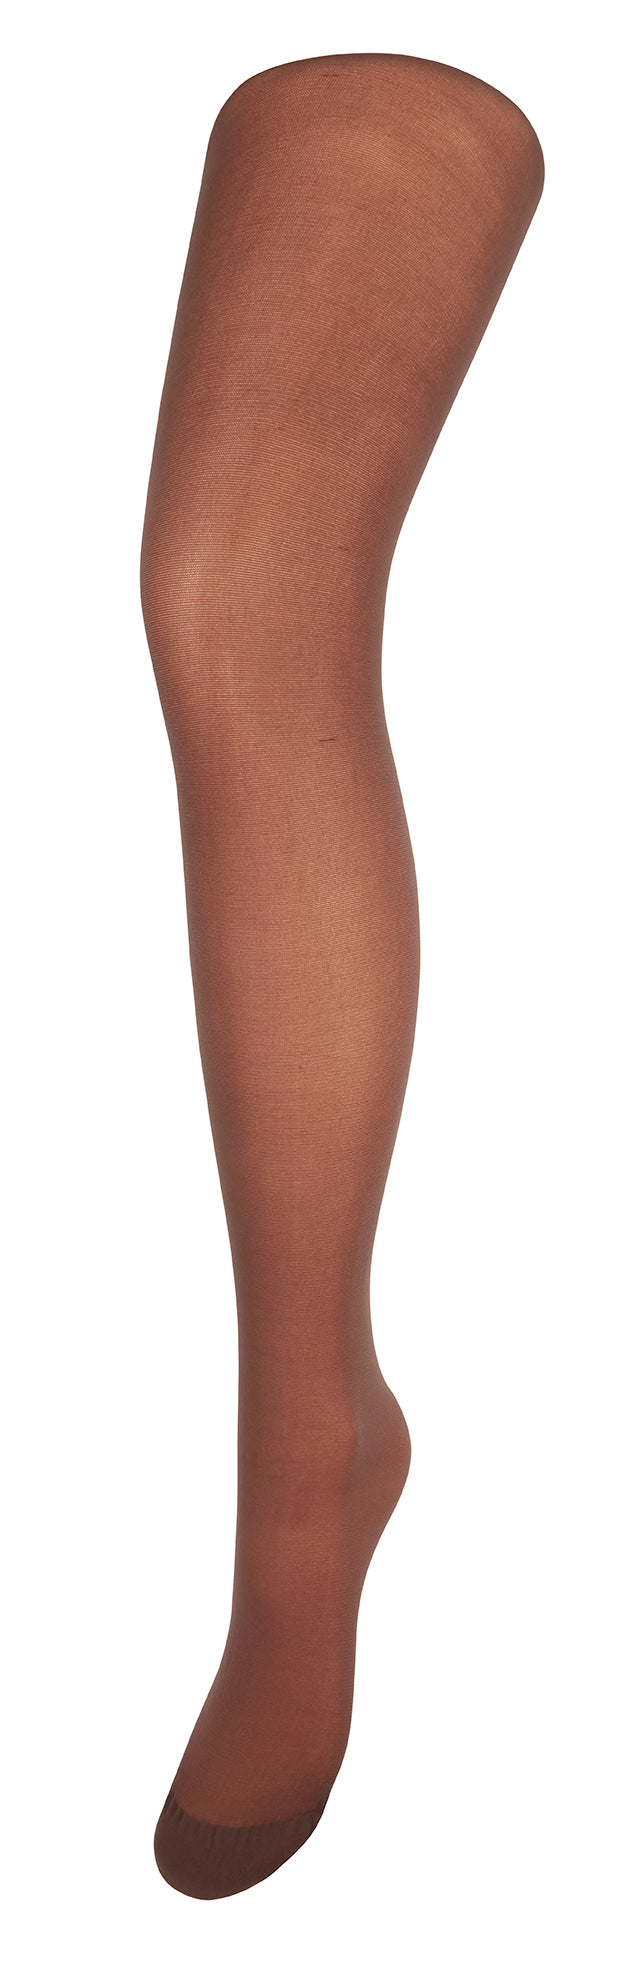 ELLE Sheer Tights 30 Denier - Plus 2 Free Single Protective Masks